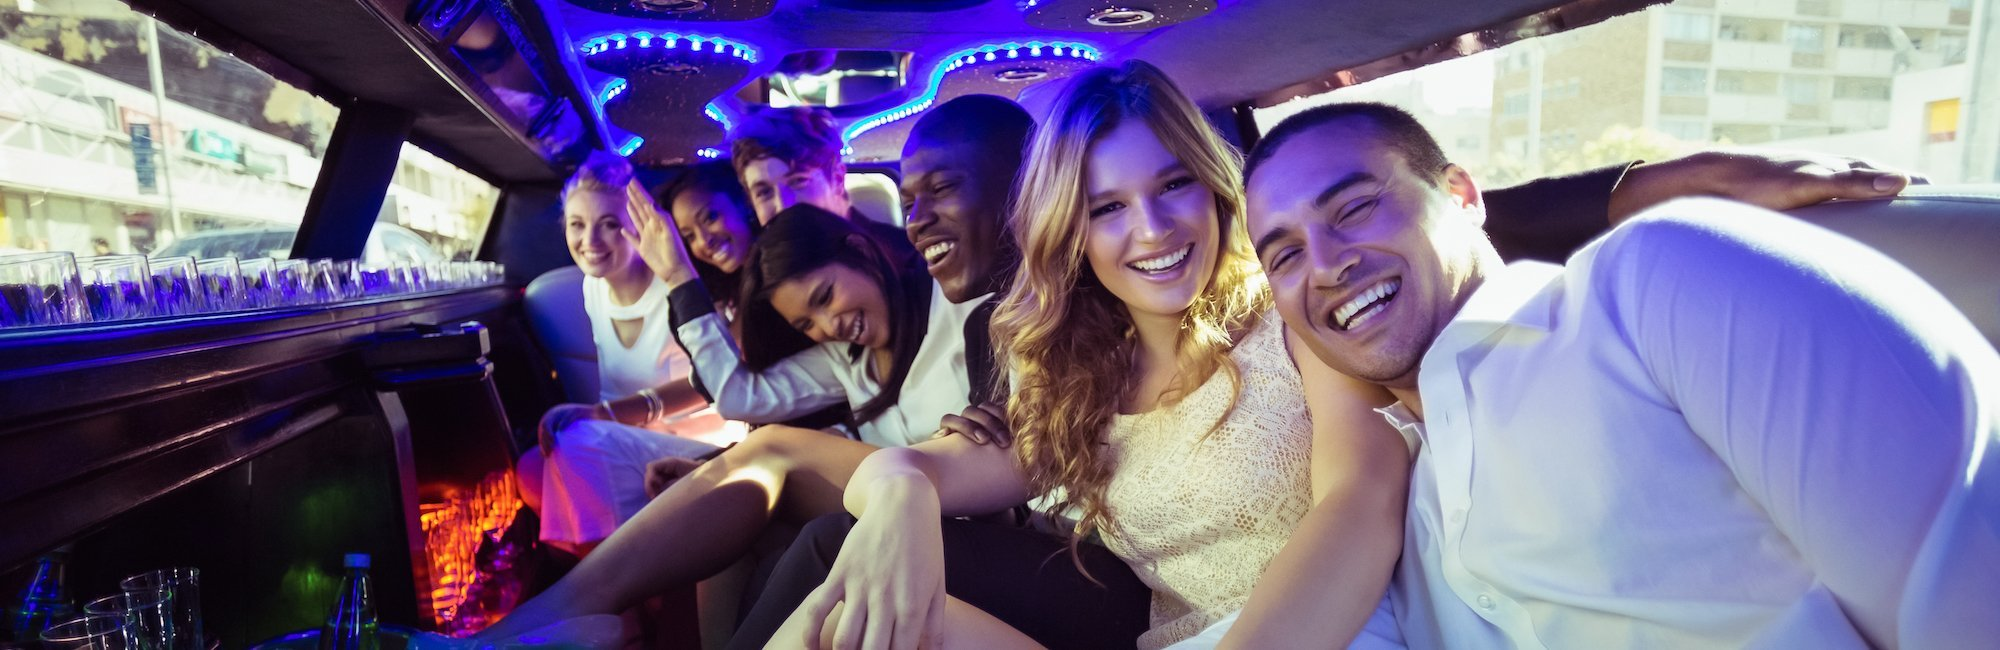 brooklyn limousine services